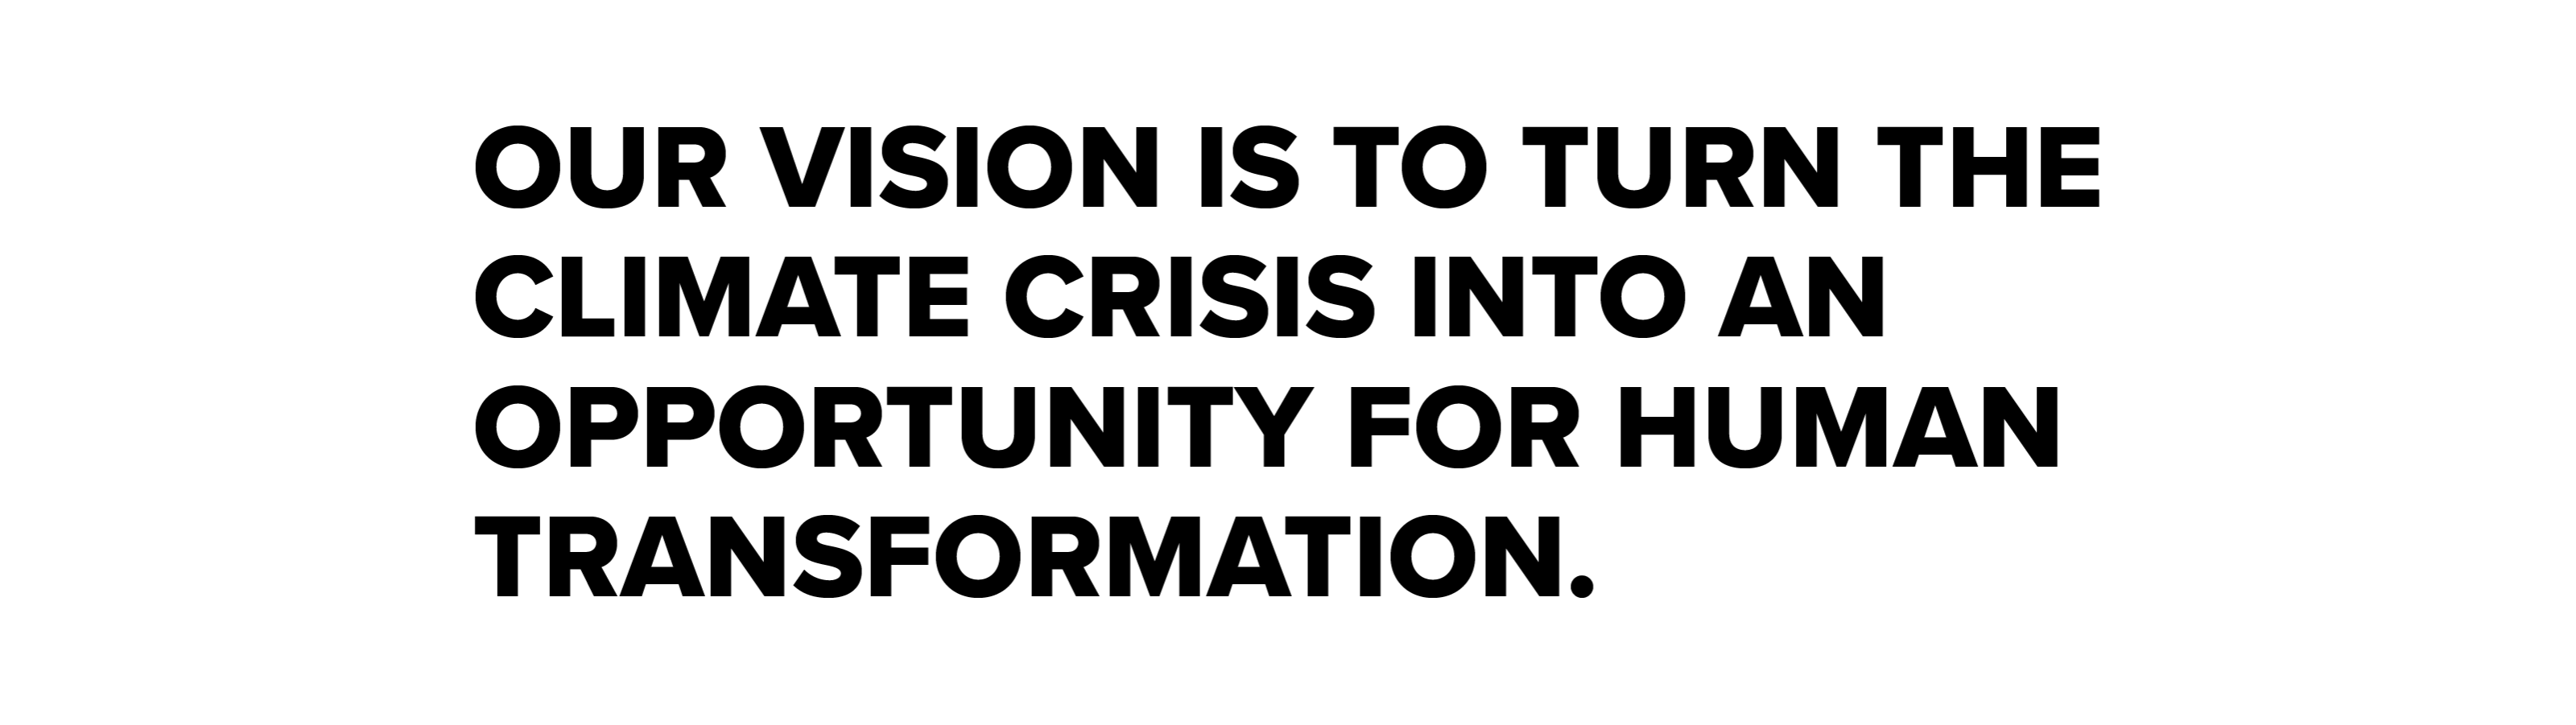 Quote that states, Our vision is to turn the climate crisis into an opportunity for human transformation.